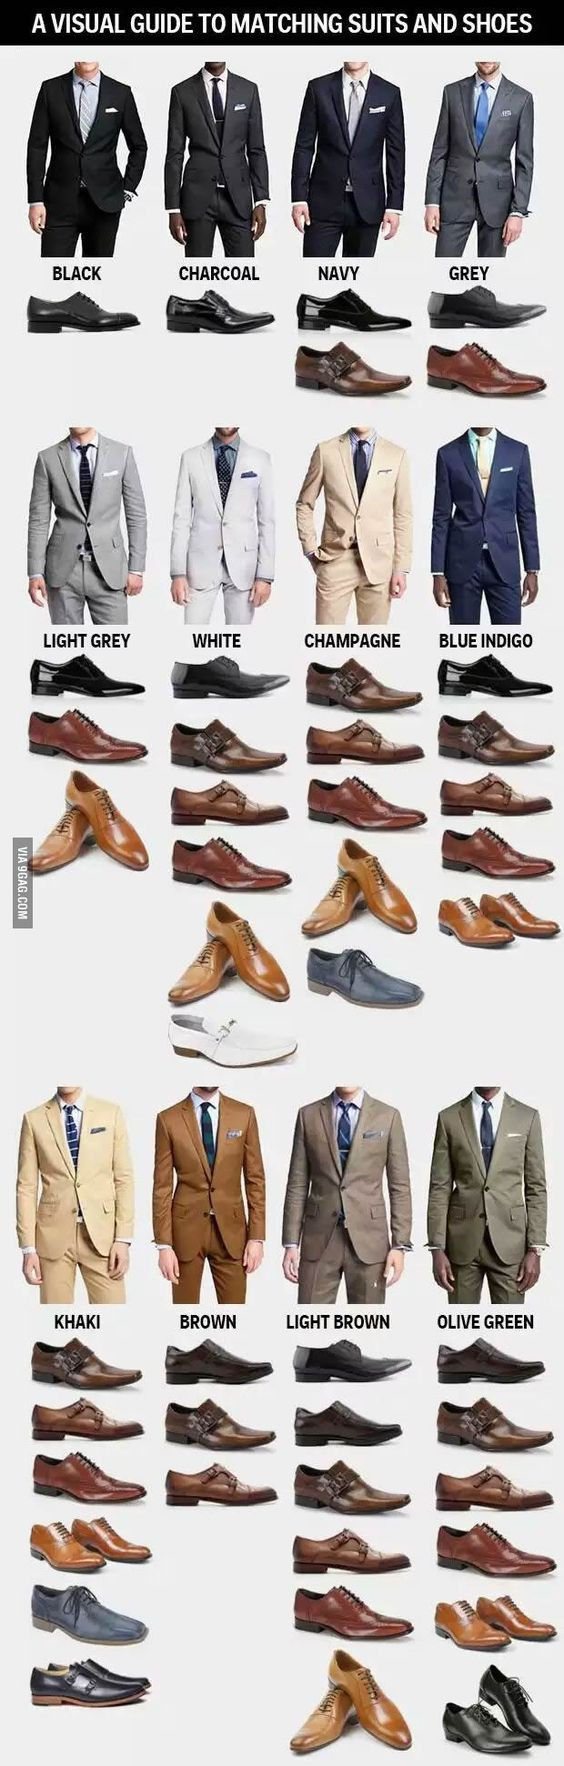 Visual guide to matching suits and shoes